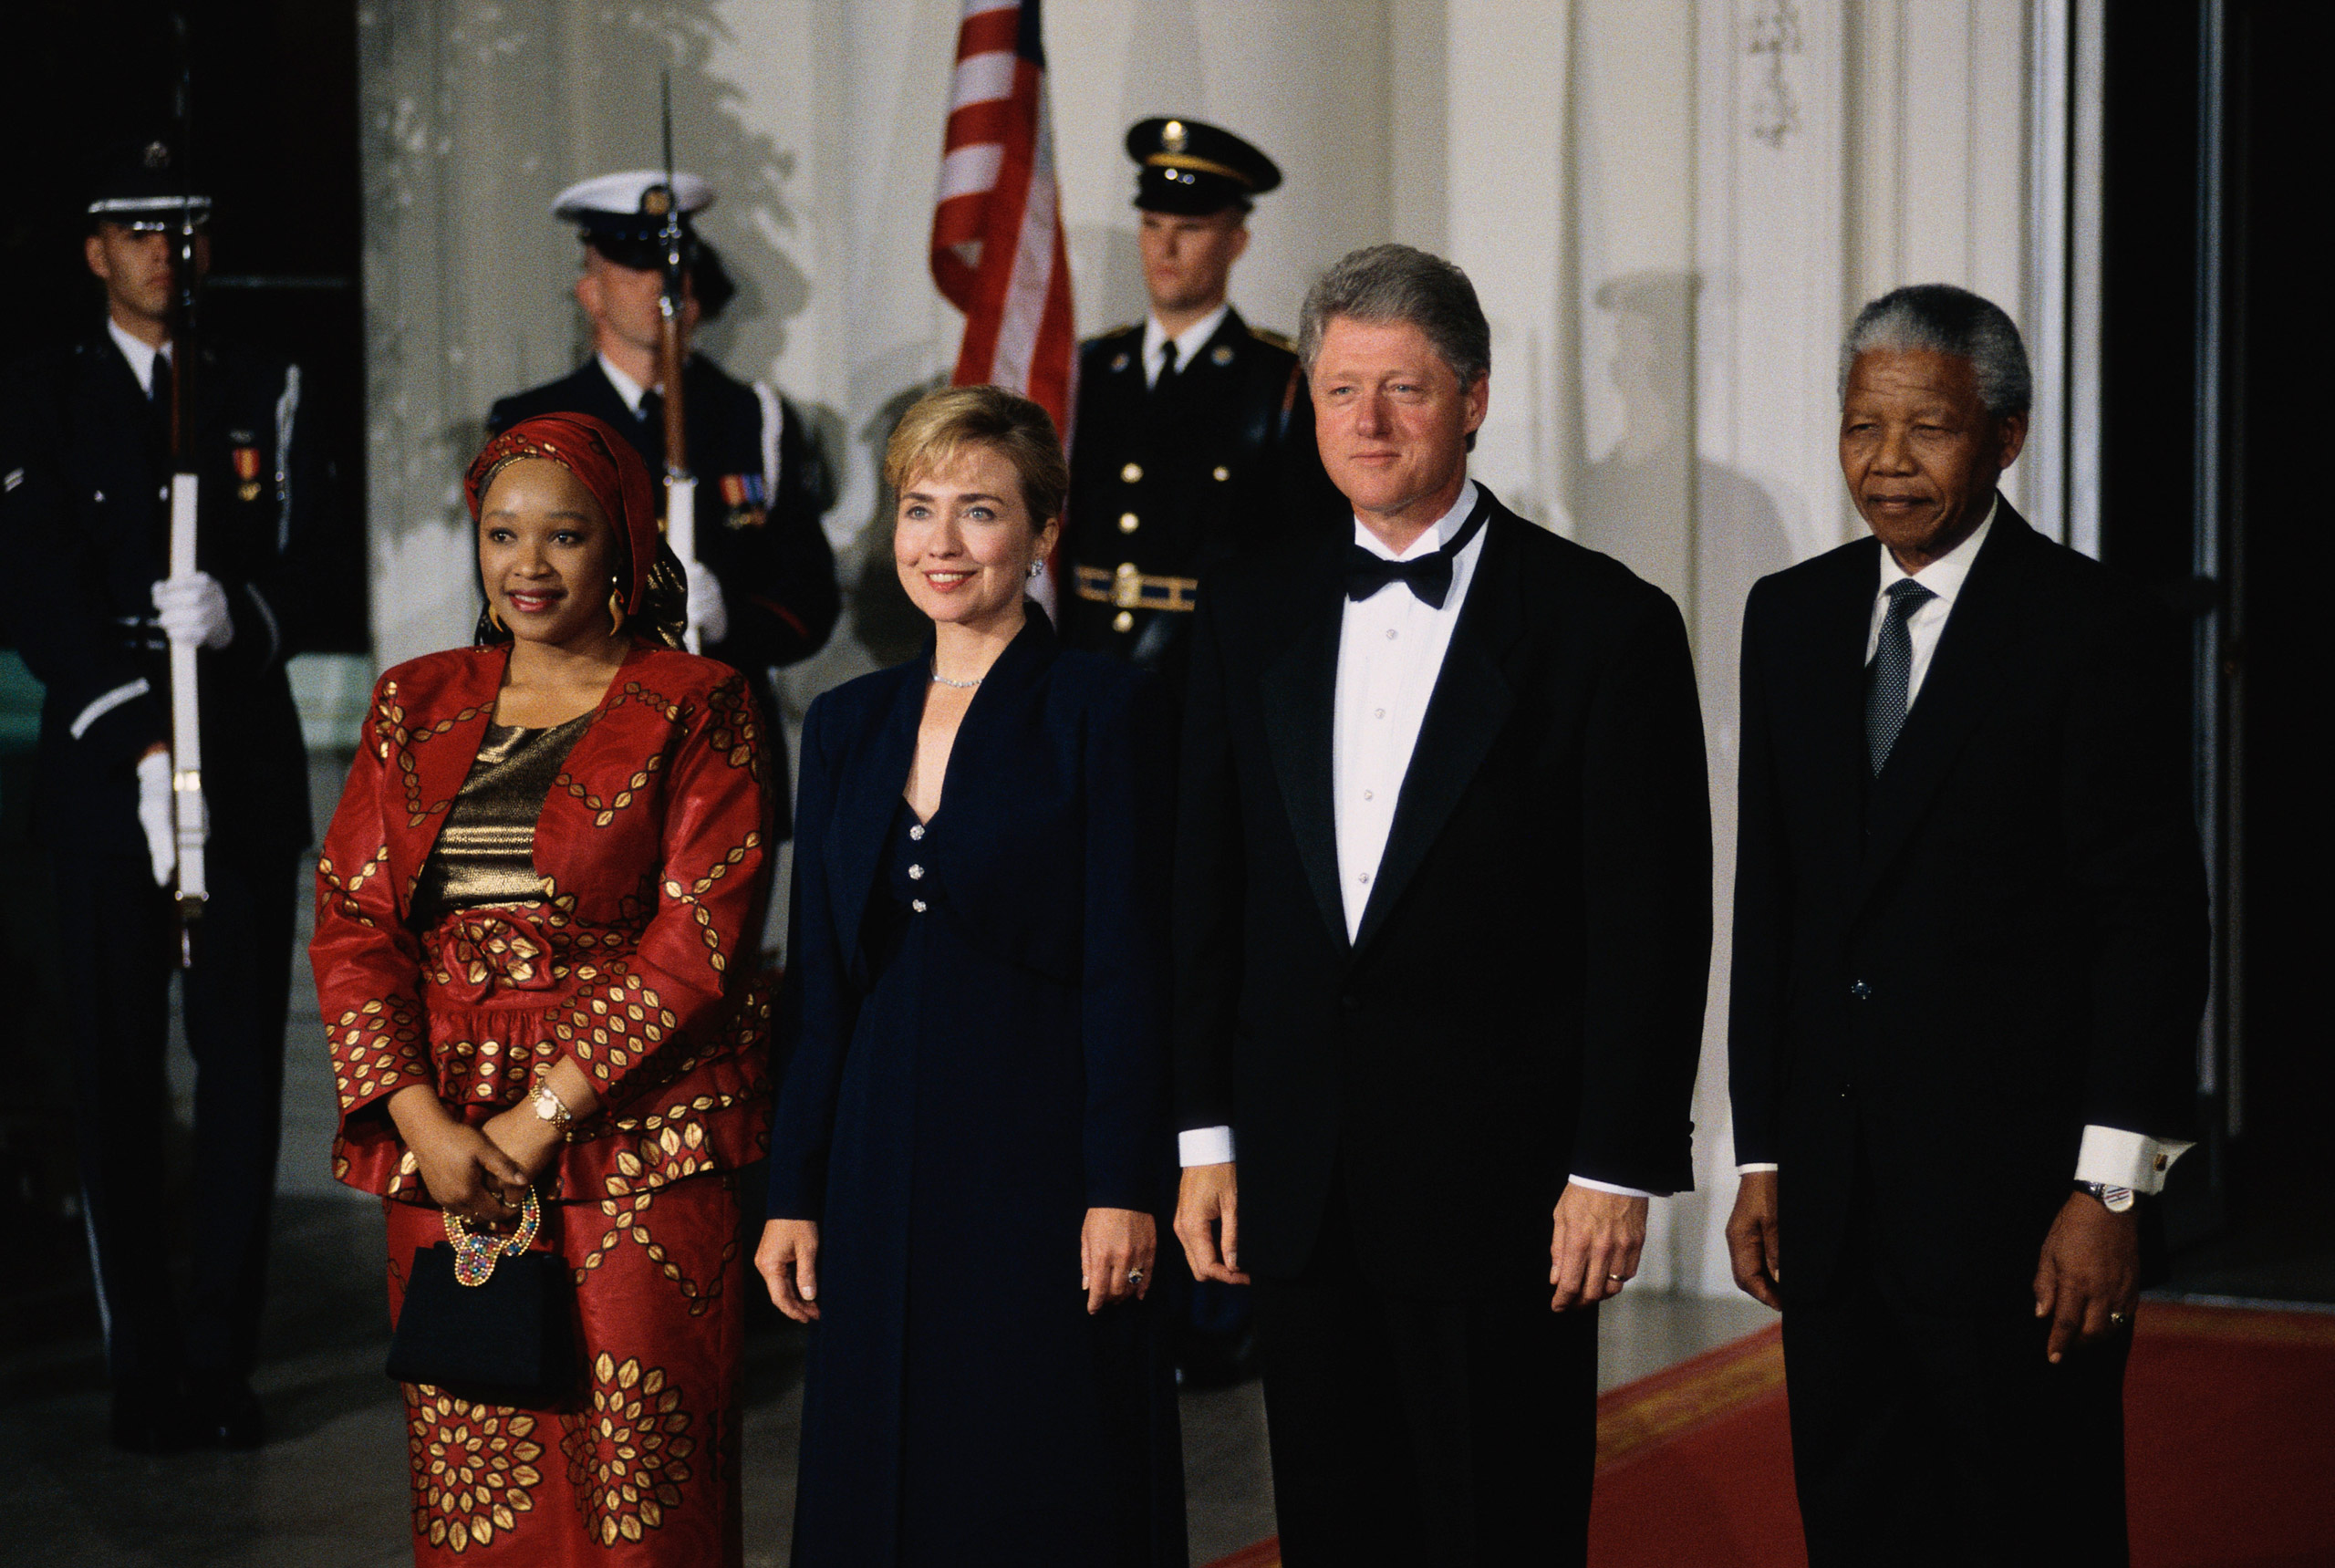 President and Mrs Clinton stand at the North Portico of the White House with South African President Nelson Mandela and his daughter before a State Dinner honoring the South African president. Oct. 4, 1994.